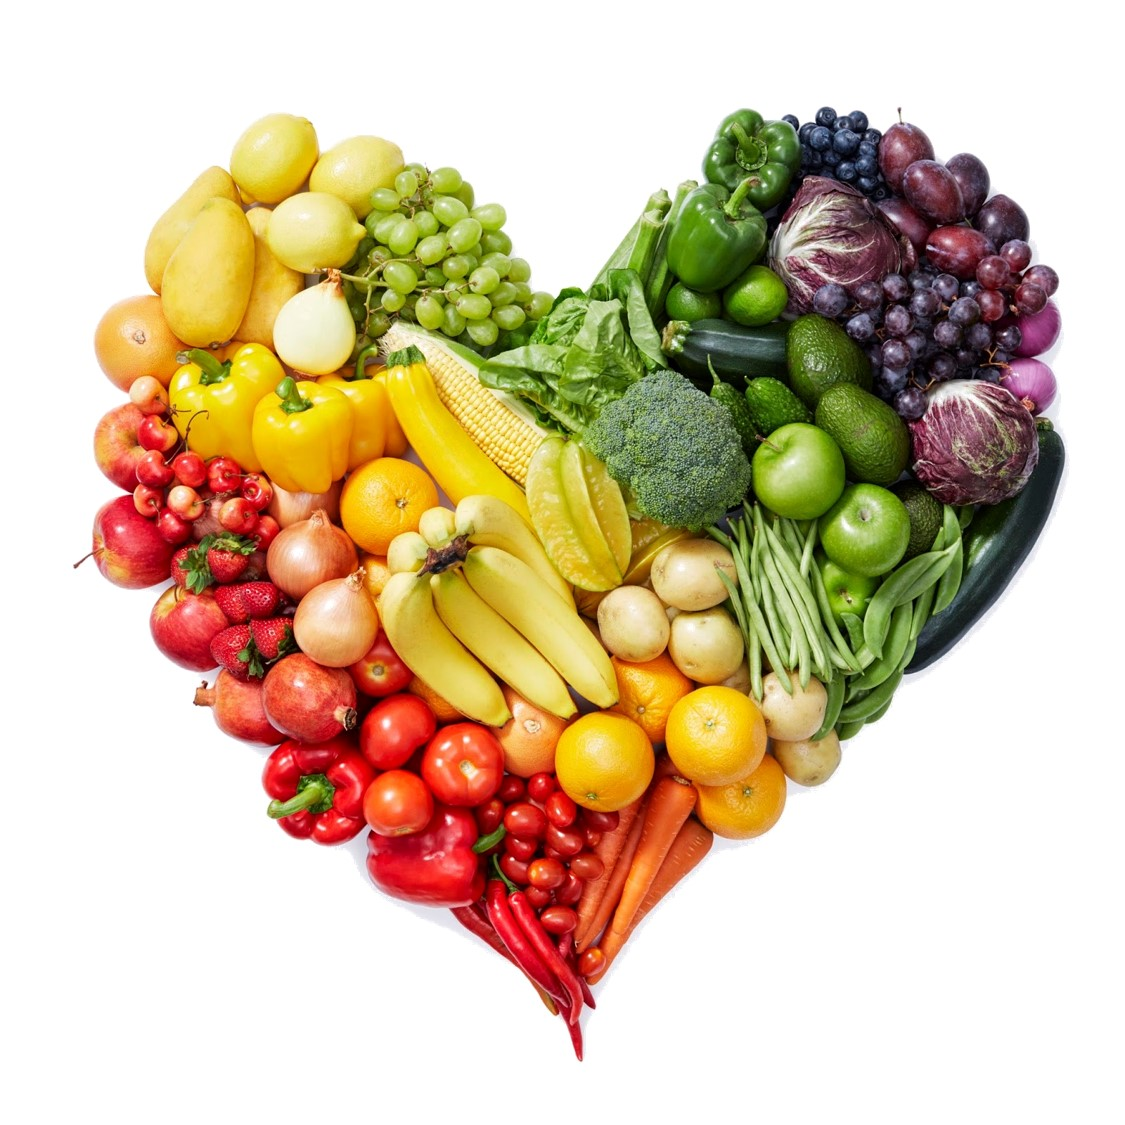 Assortment of fruit and vegetables arranged in a heart shape